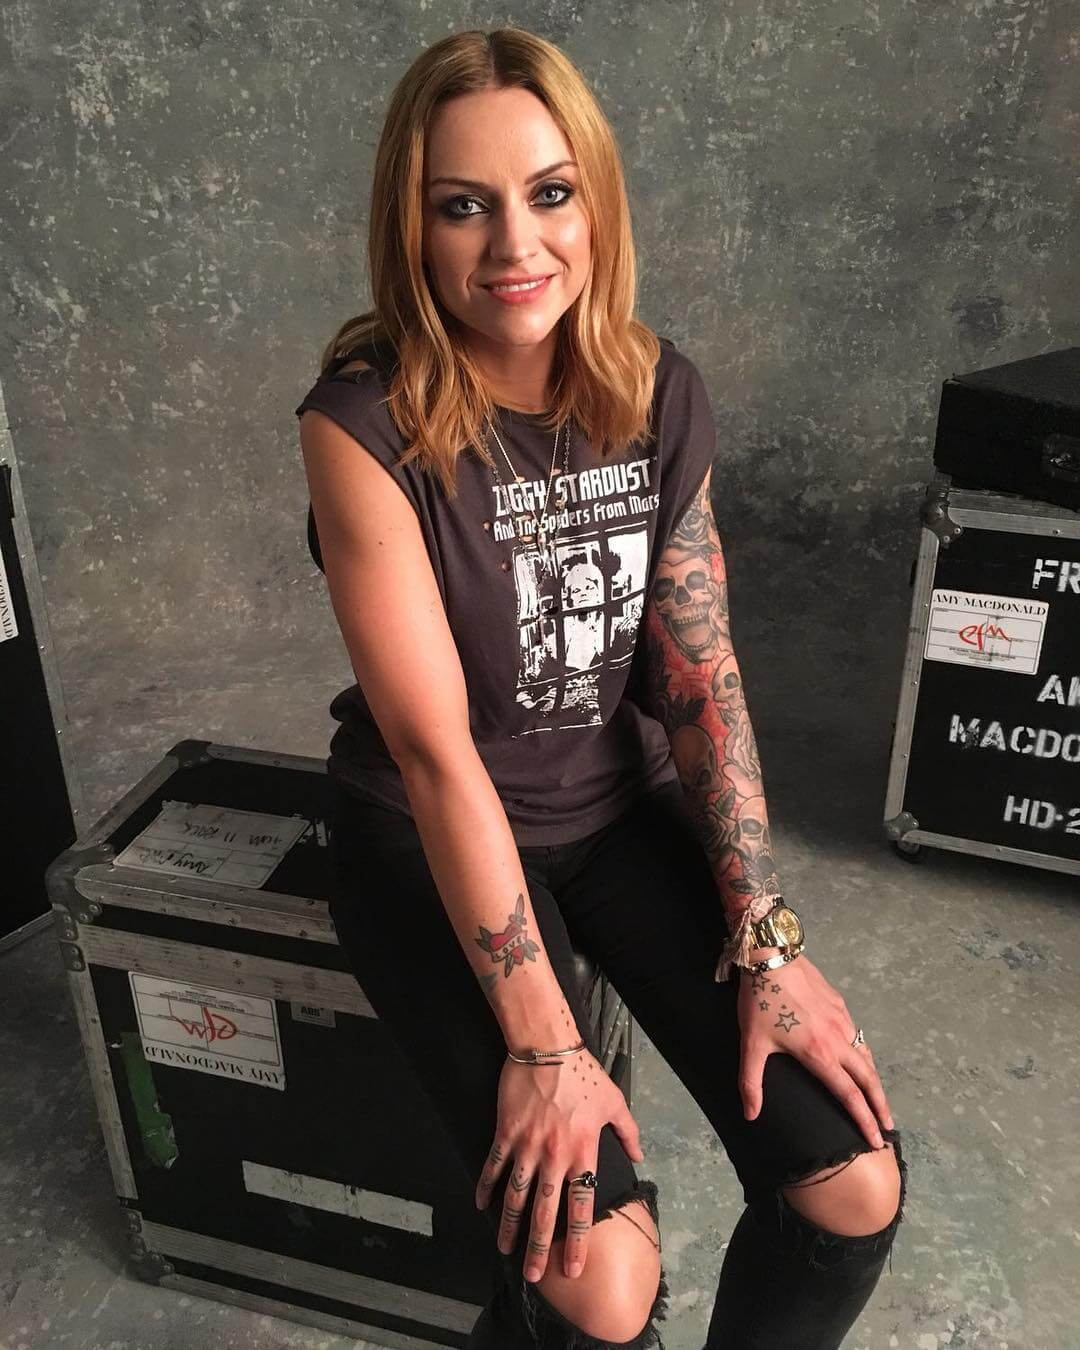 Amy Macdonald Topless 49 hot pictures of amy macdonald which will rock your world